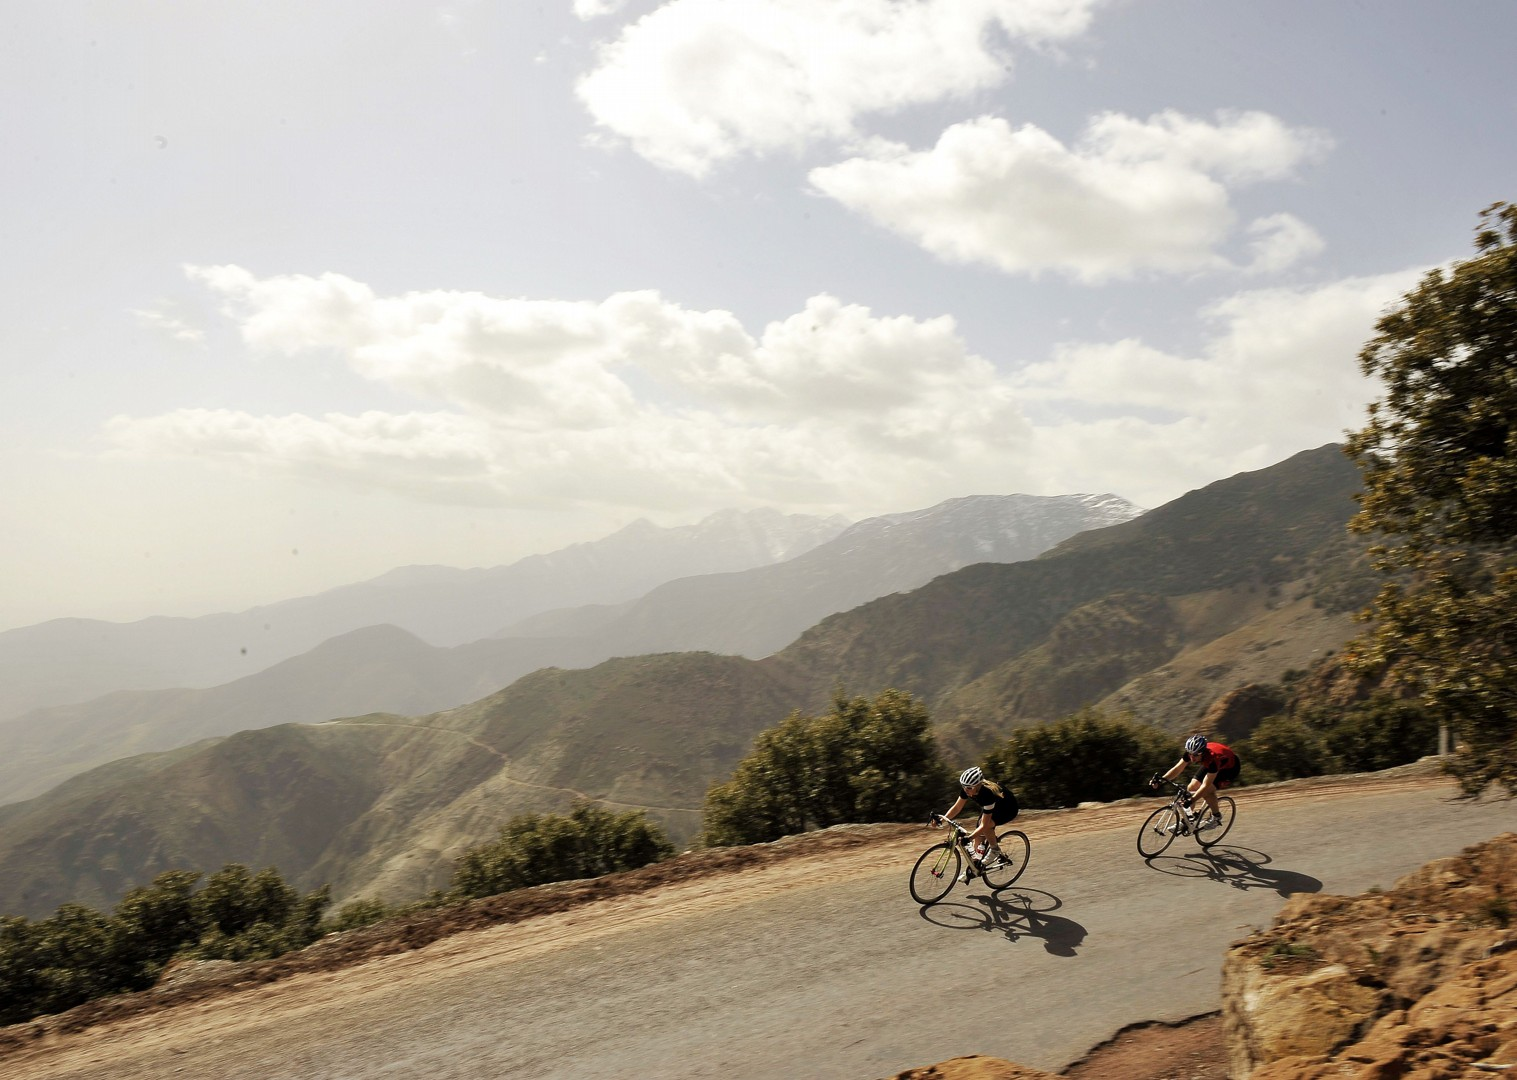 guided-road-cycling-holiday-road-atlas-morocco.jpg - Morocco - Road Atlas - Road Cycling